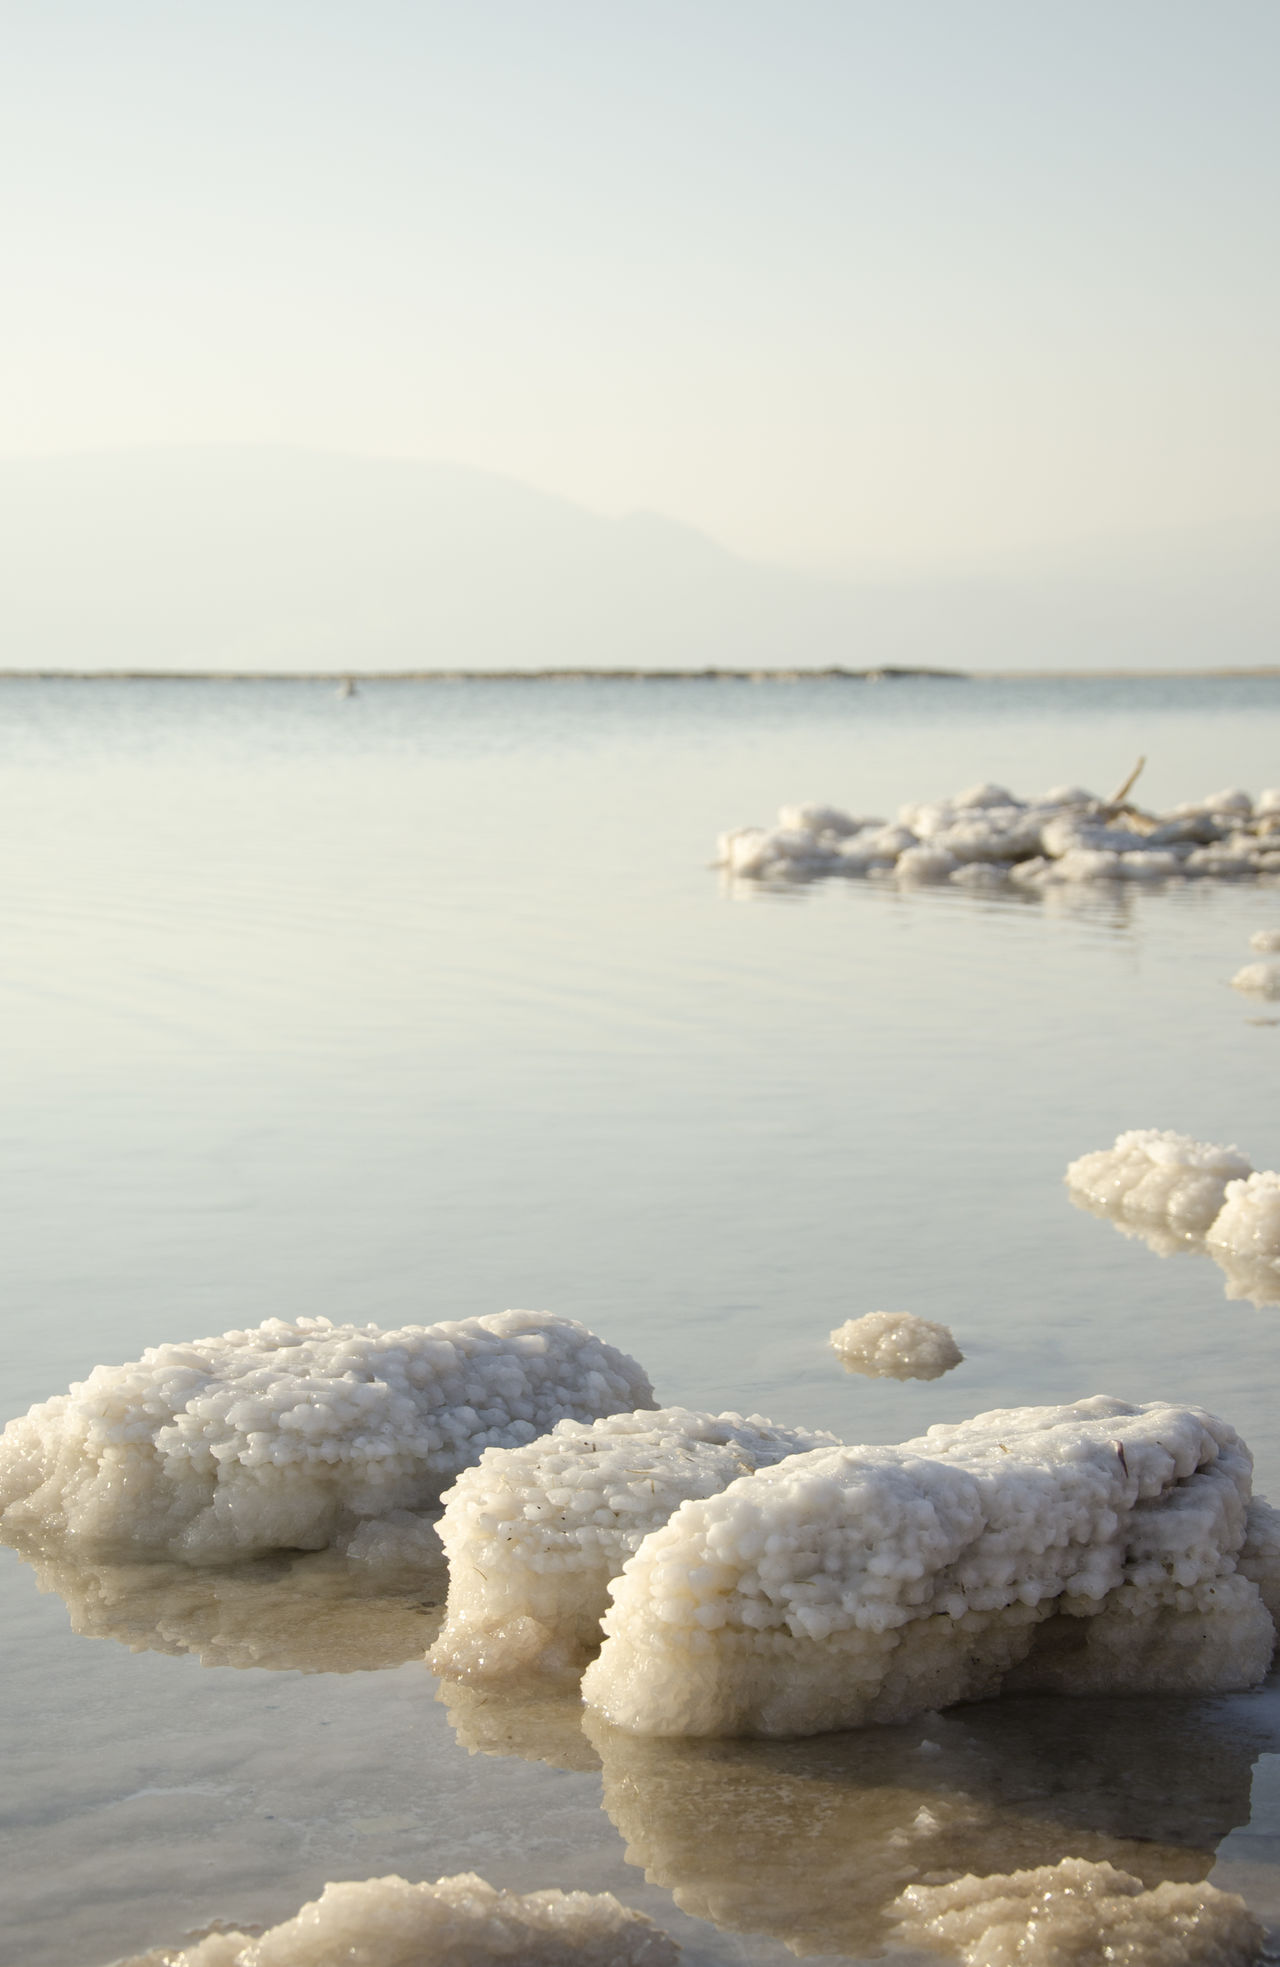 Beach Beauty In Nature Dead Sea  Dead Sea View Deadsea Lake Landscape Nature Nature Photography Nature_collection No People Outdoors Rock - Object Rocks Rocks And Minerals Rocks And Water Salt Lake Saltwater Scenics Sea Tourist Attraction  Tranquil Scene Travel Travel Photography Water